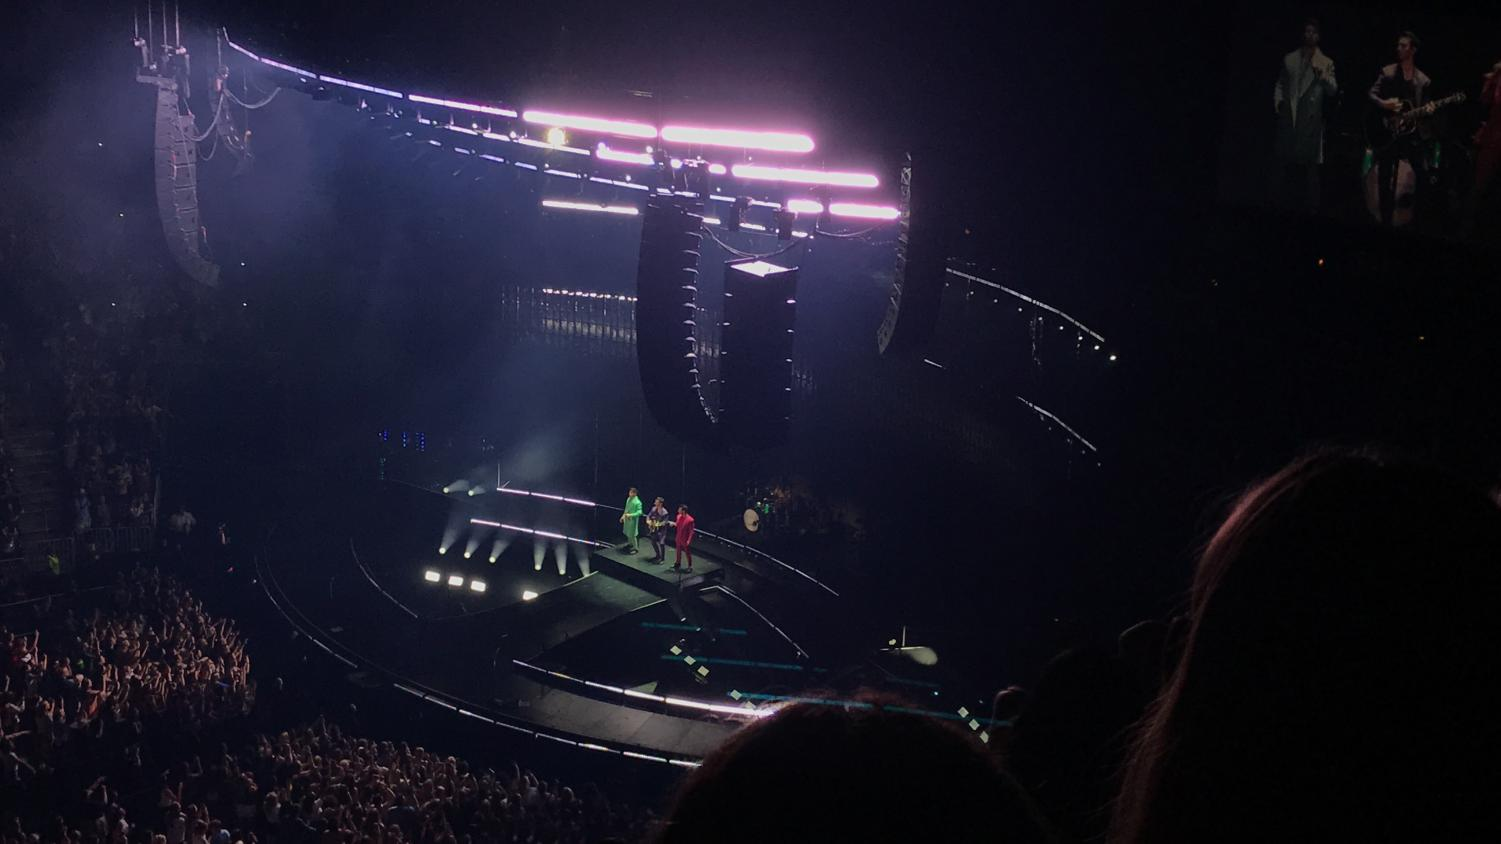 """The Jonas Brothers start off their Happiness Begins tour with their song """"Rollercoaster"""" while coming down a moving platform from the top of the stage to the middle. While the platform moved, fireworks and sparks went off exciting the crowd. This amped up the crowd preparing them for the rest of the two-hour show."""